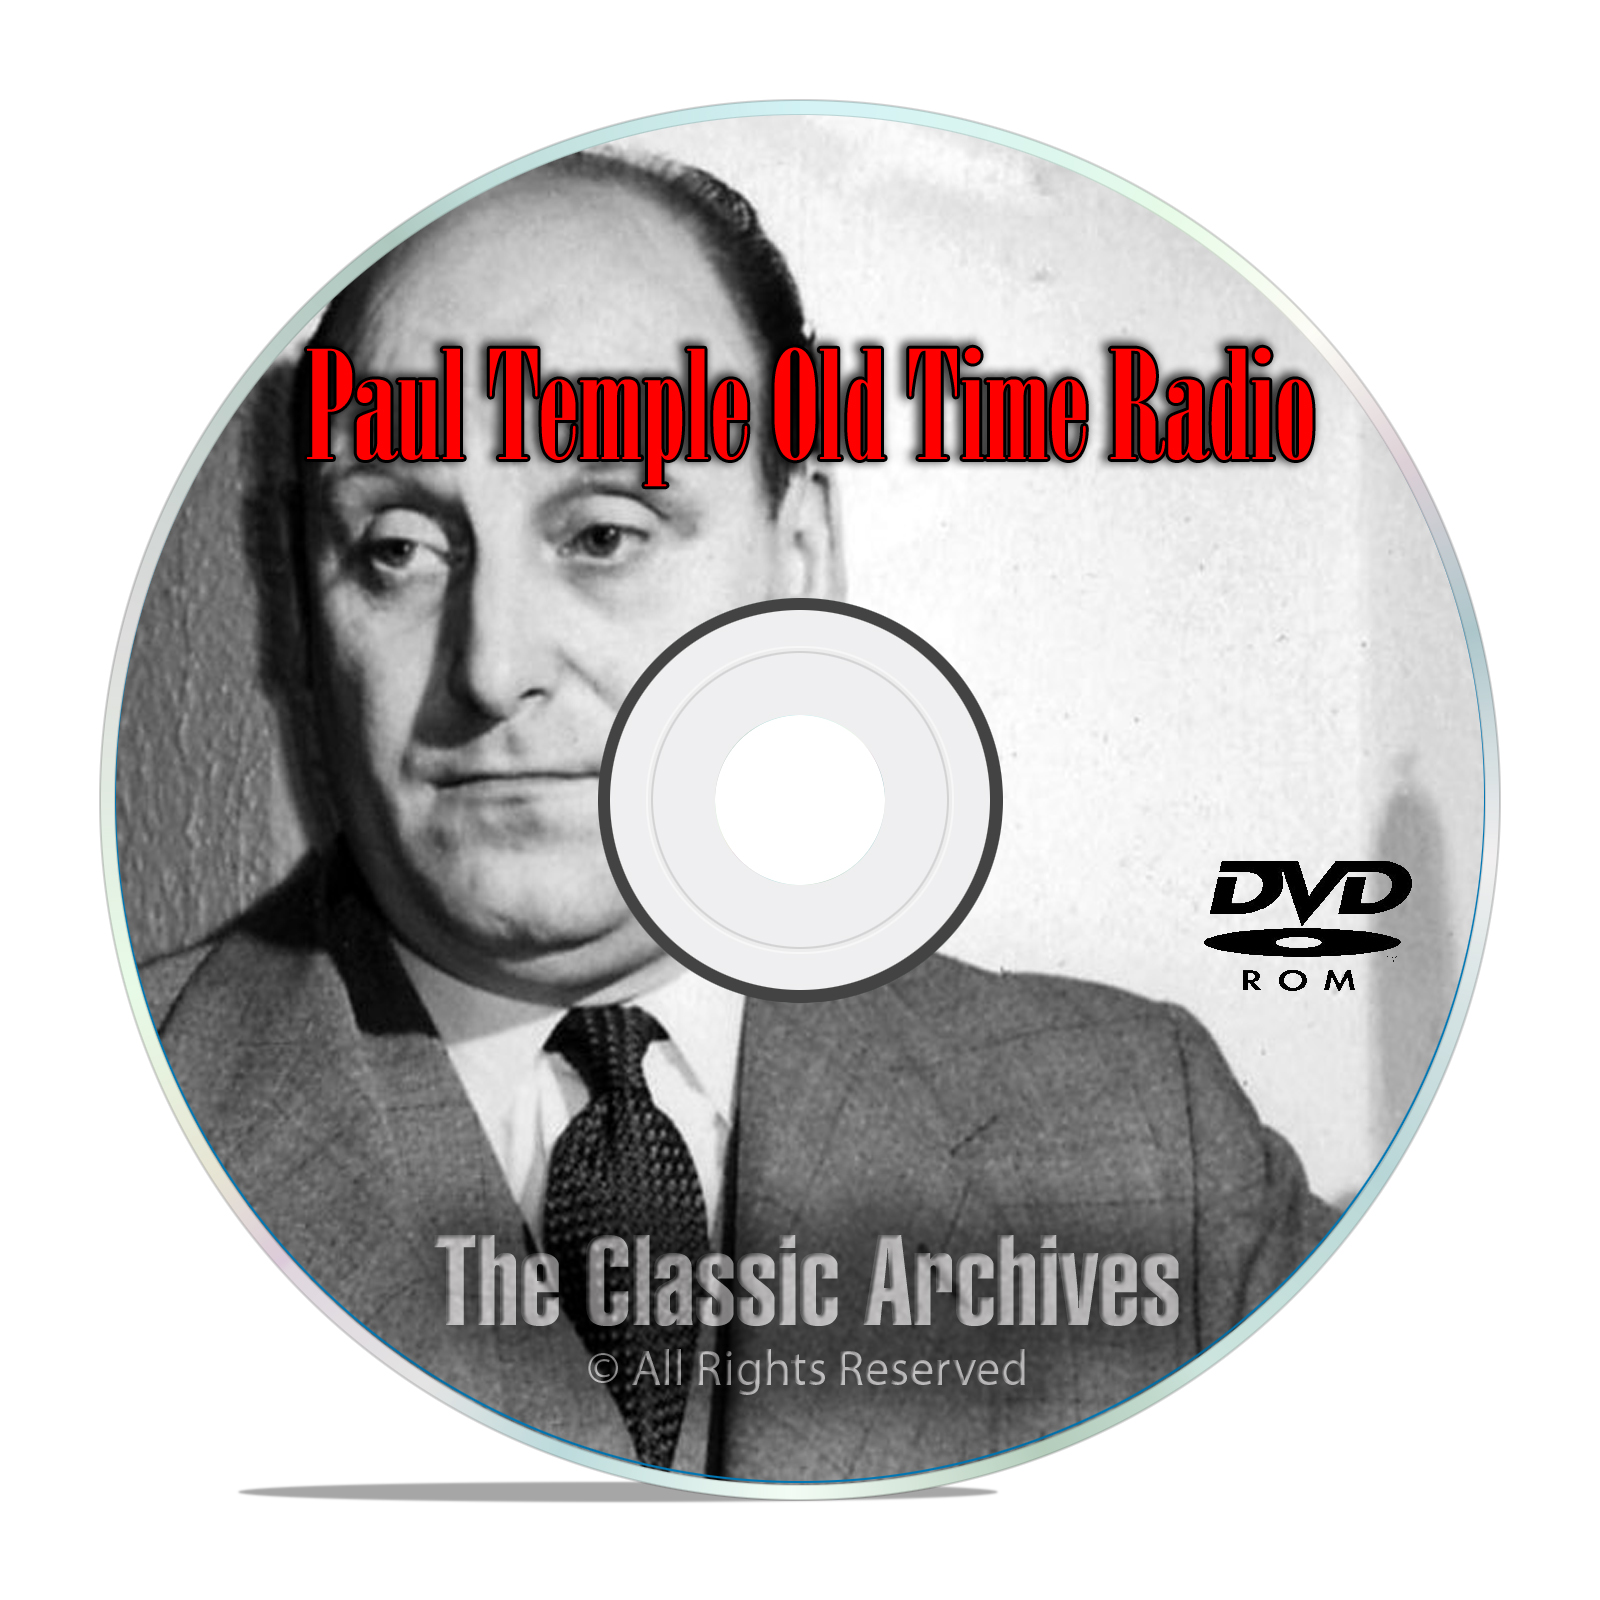 Paul Temple OTR Old Time Radio, 125 Episodes, 16 Classic Series, on MP3 DVD